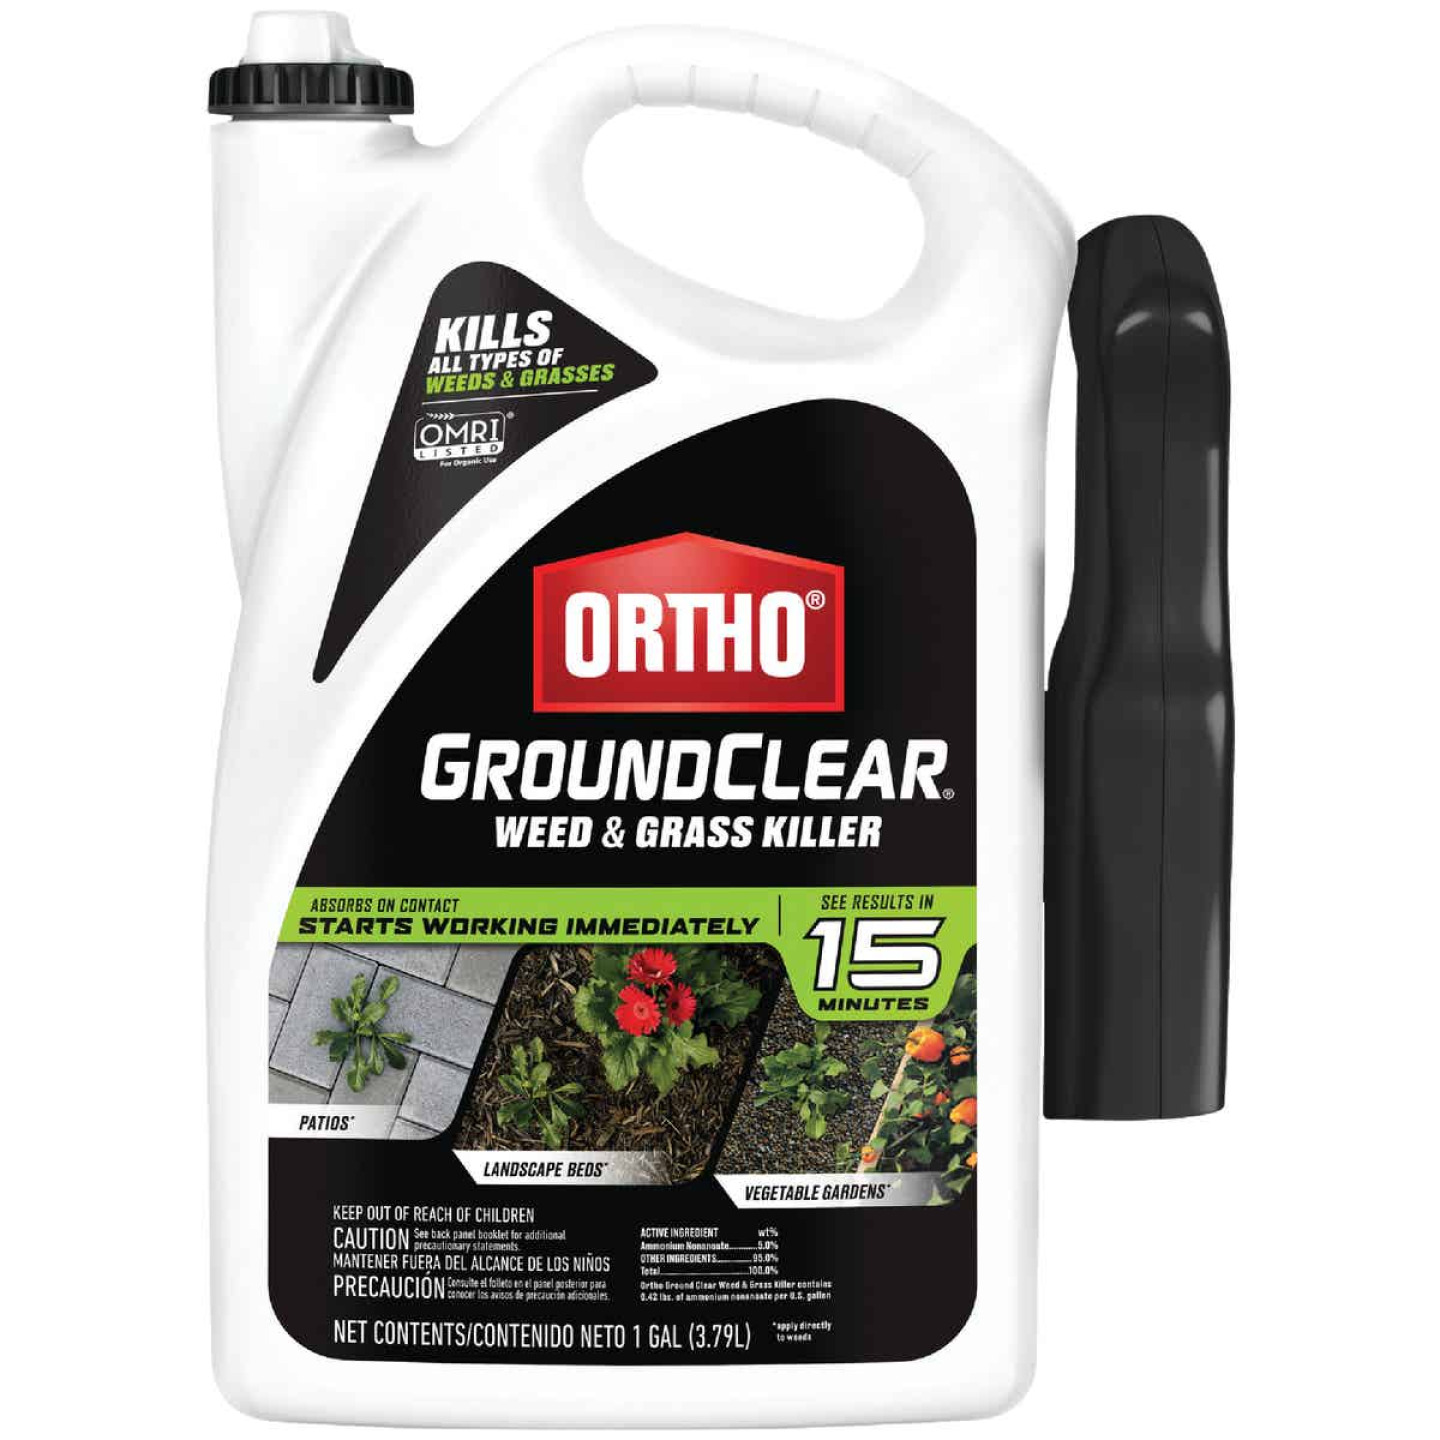 Ortho GroundClear 1 Gal. Ready To Use Trigger Spray Weed & Grass Killer Image 1